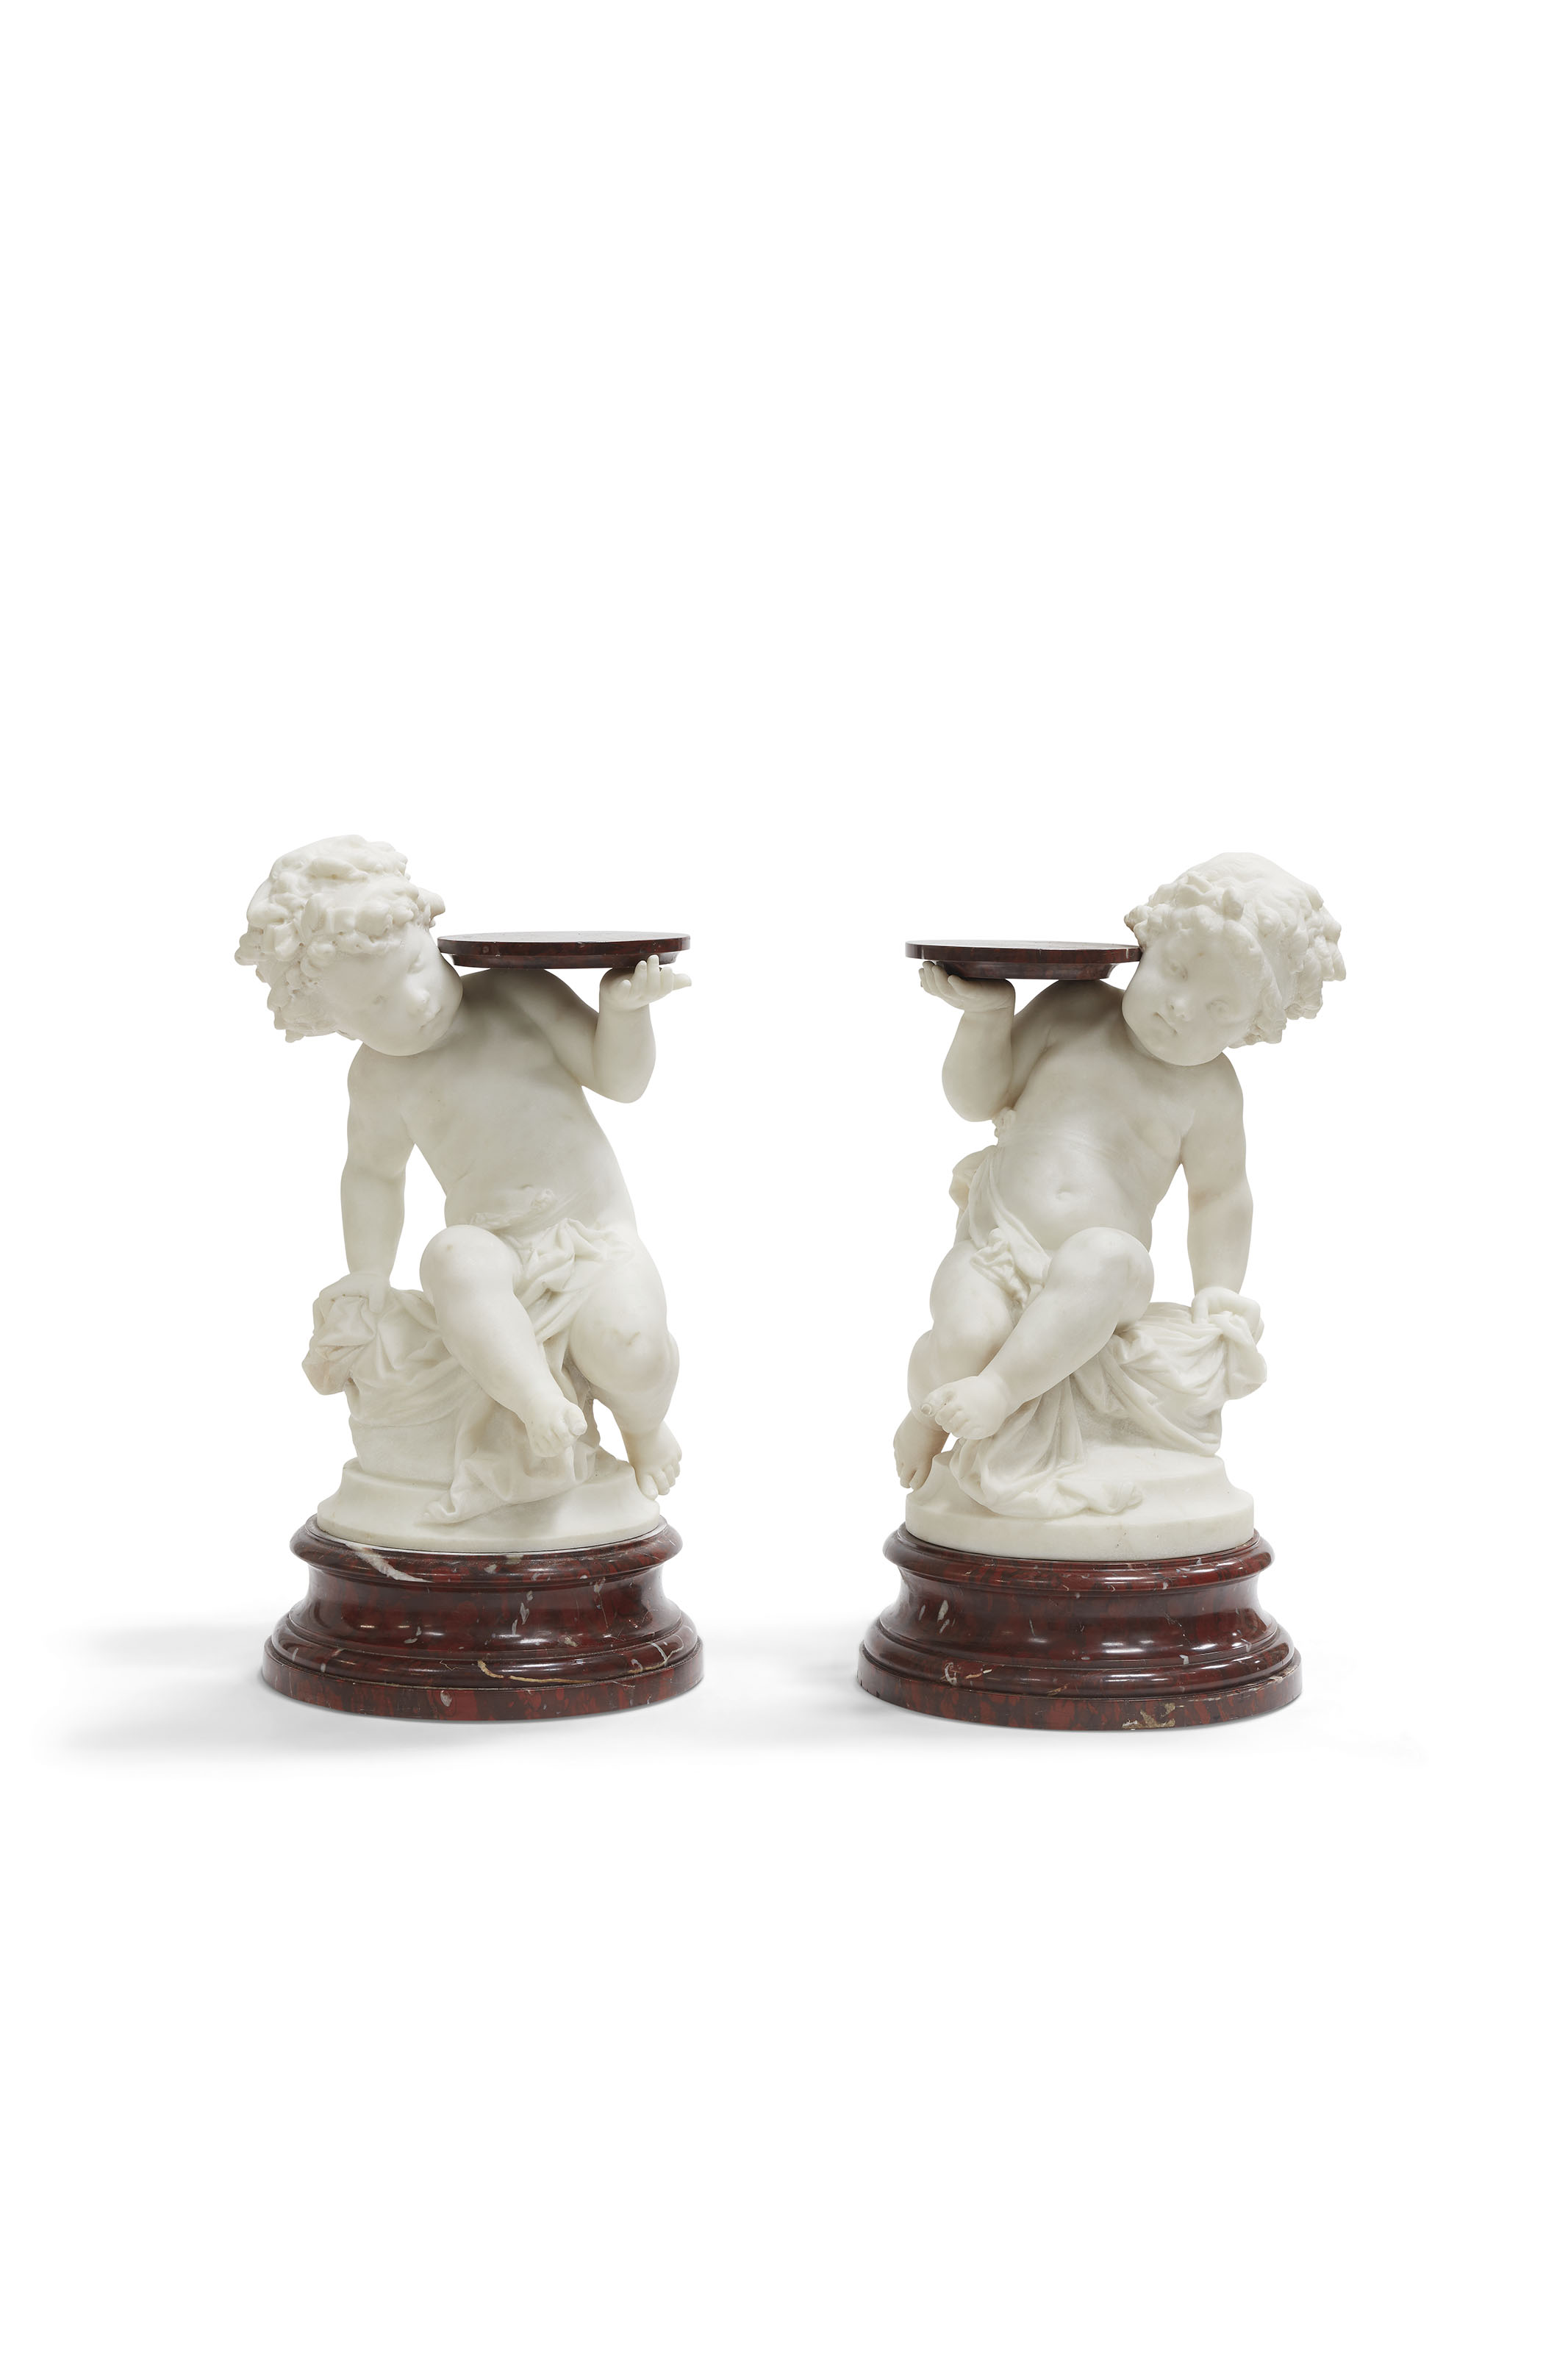 A PAIR OF FRENCH MARBLE MODELS OF PUTTI